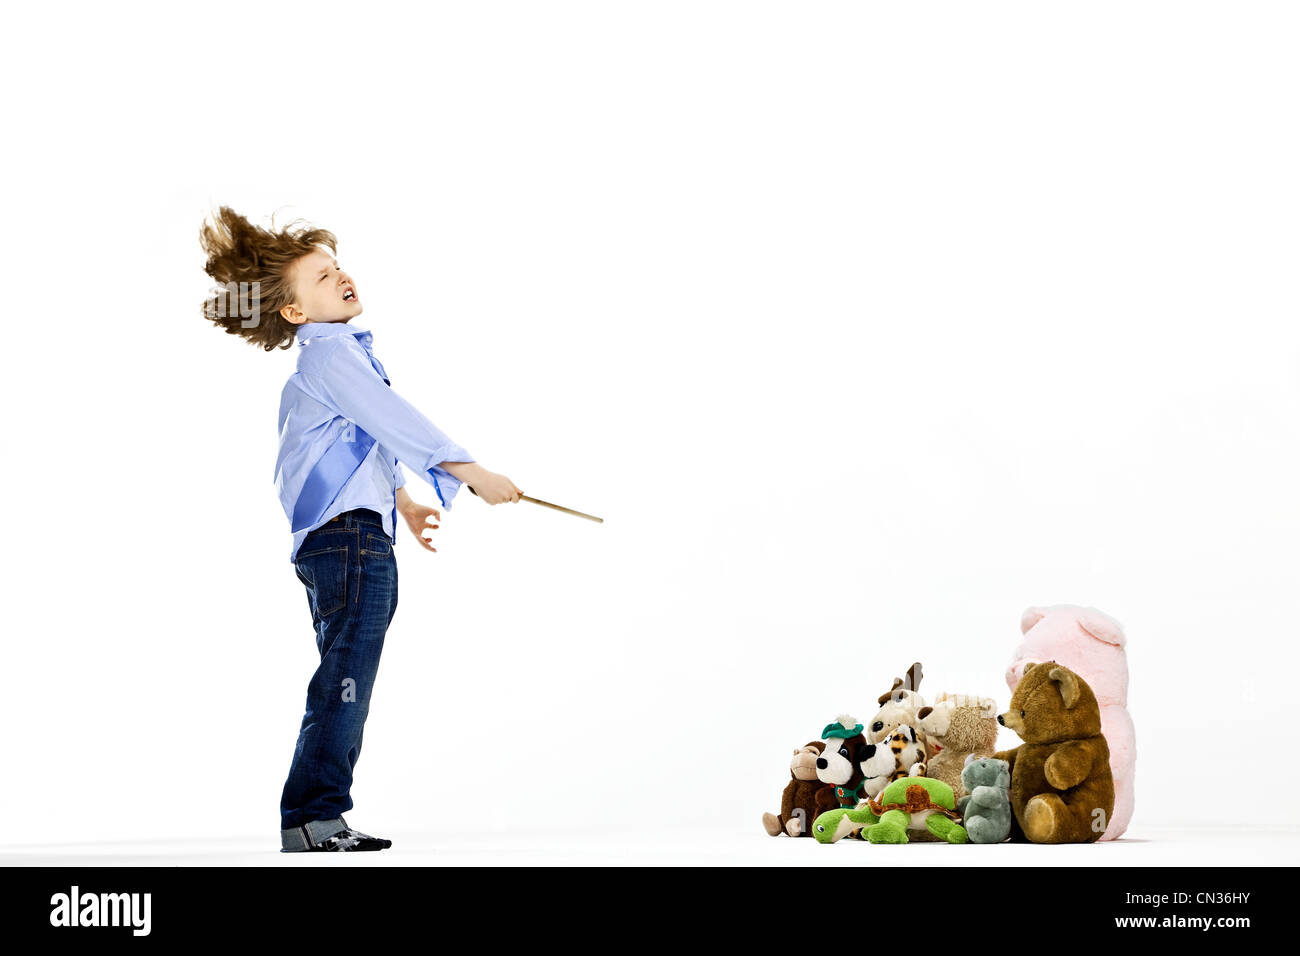 Boy pretending to be musical conductor - Stock Image